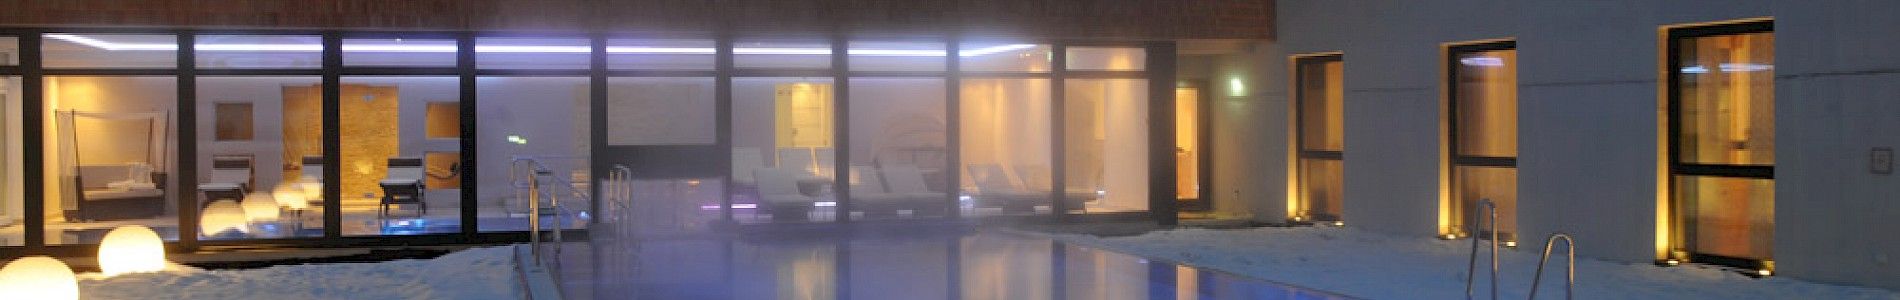 Wintergenuss mit Day-Spa